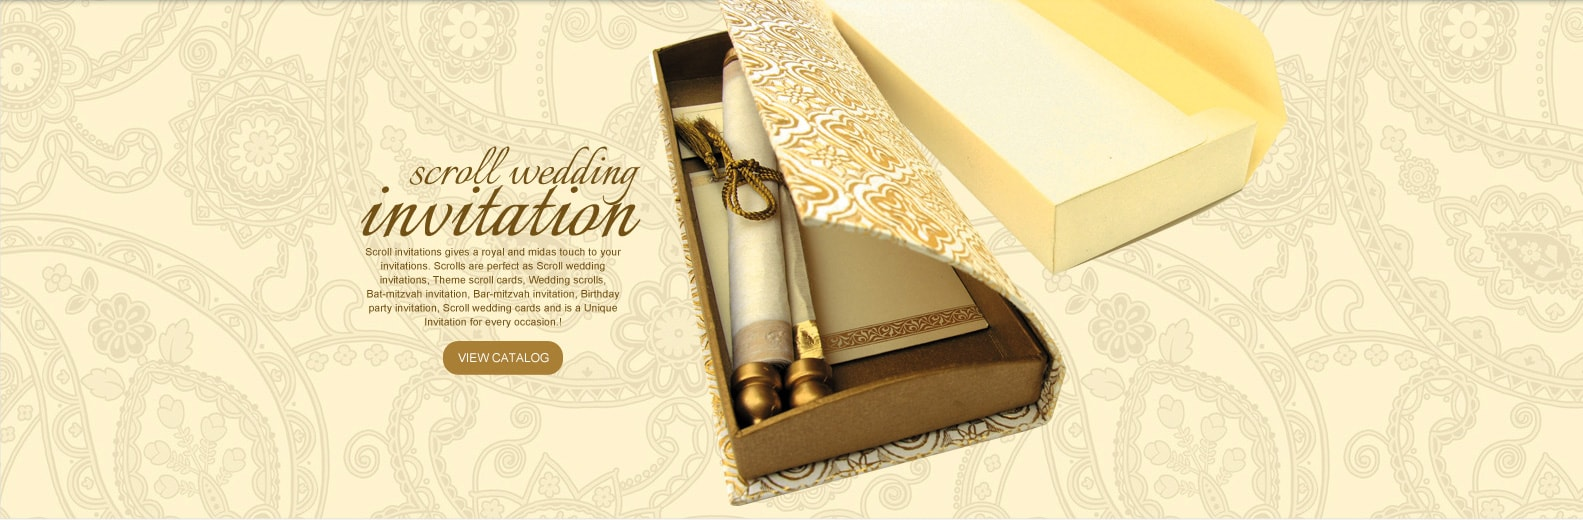 Scroll Invitations Bat amp Bar Mitzvah Wedding